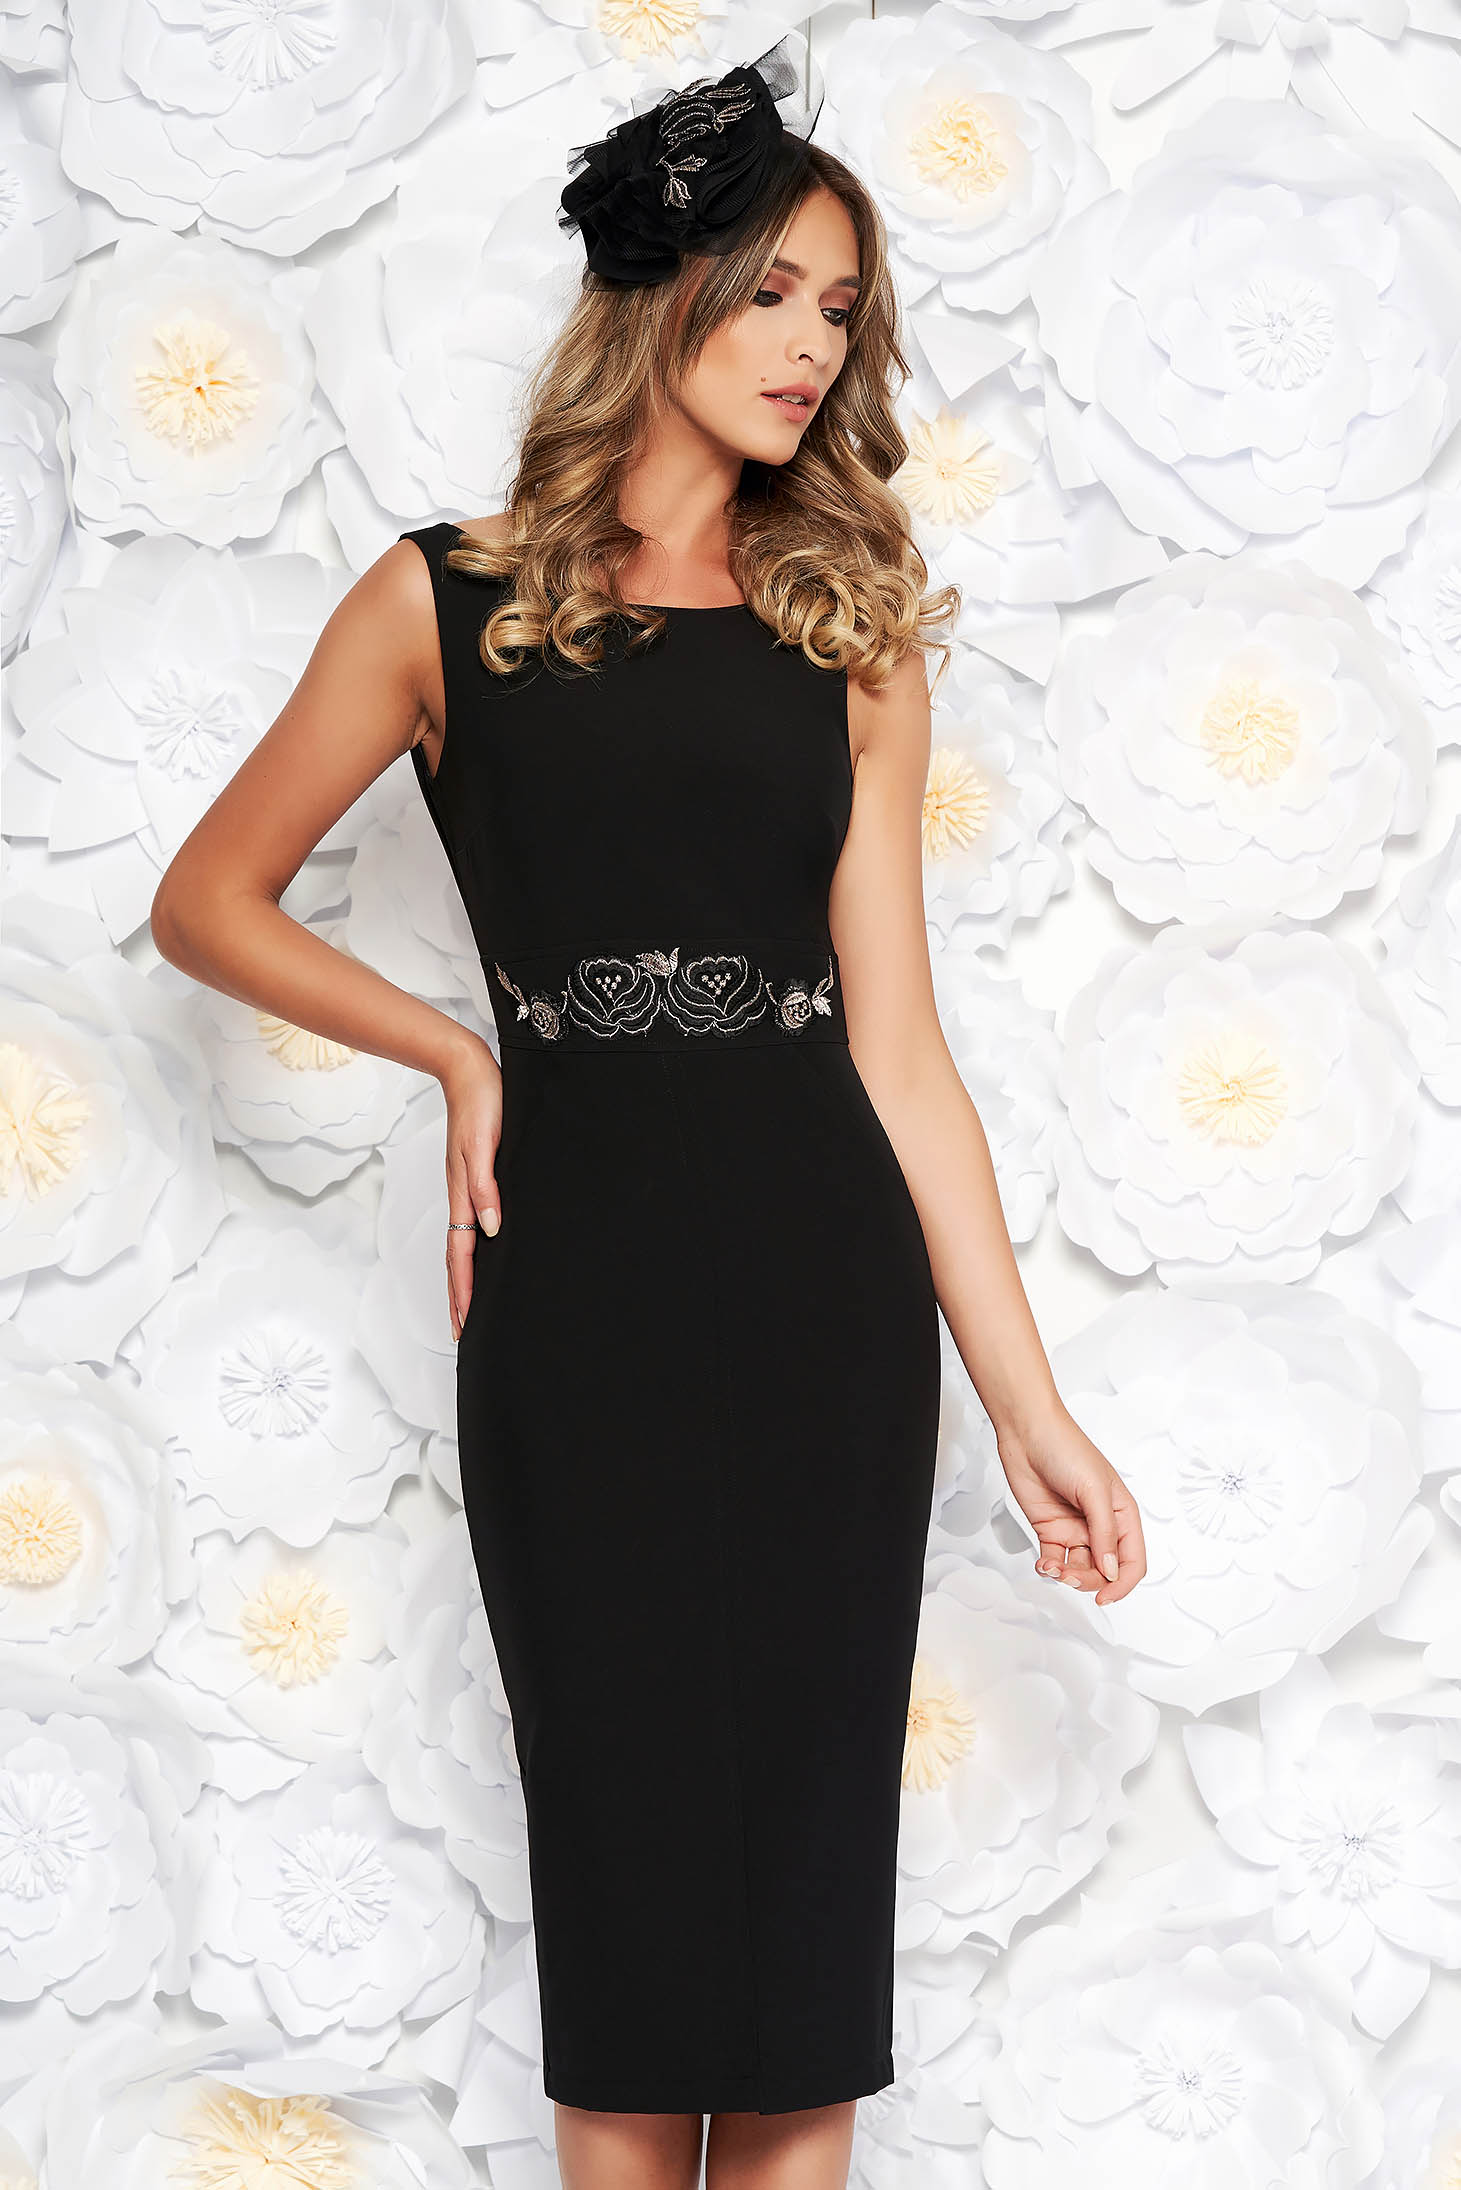 StarShinerS black pencil dress slightly elastic fabric with inside lining lace and sequins details occasional